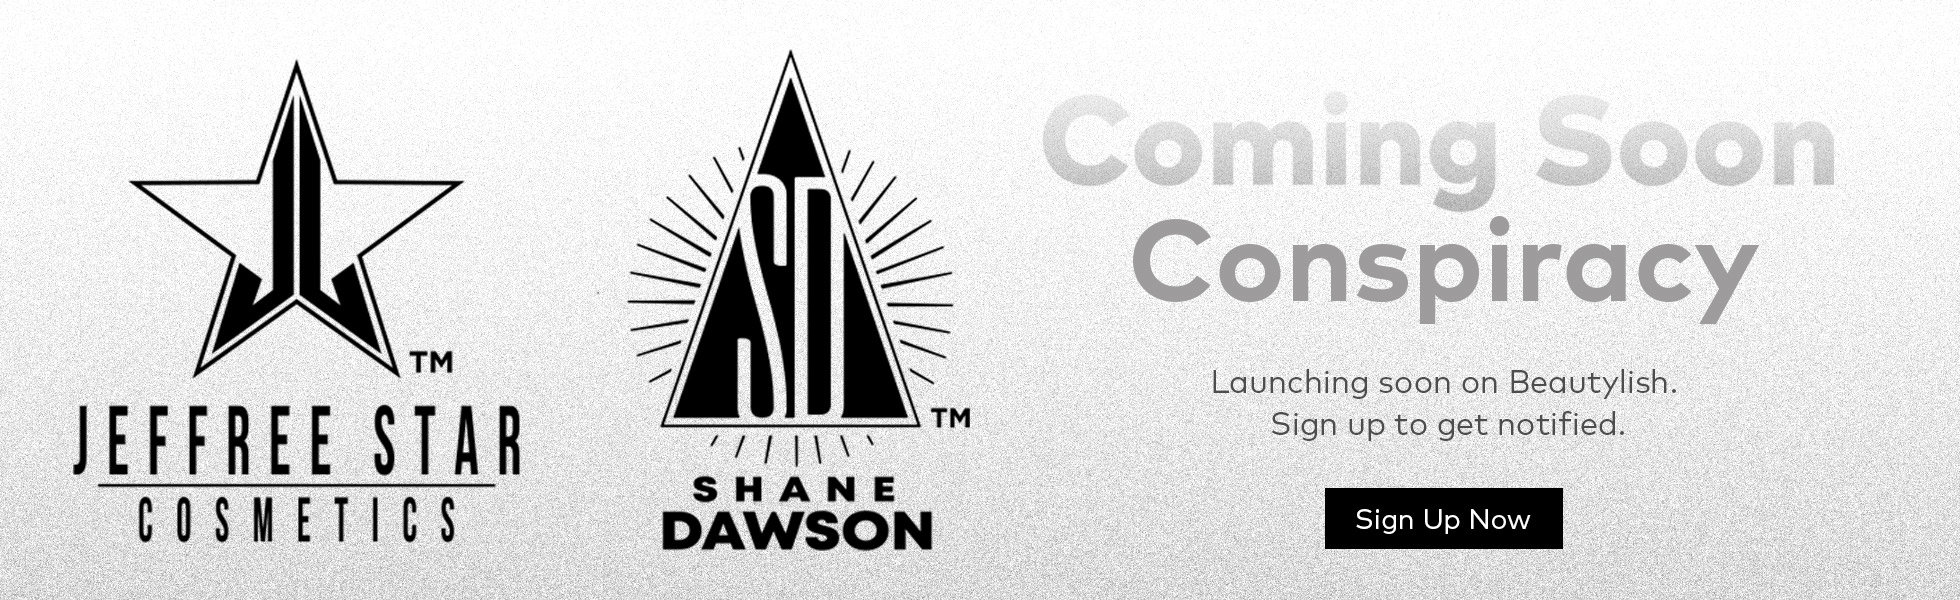 Jeffree Star Cosmetics x Shane Dawson Conspiracy coming soon – sign up for notifications